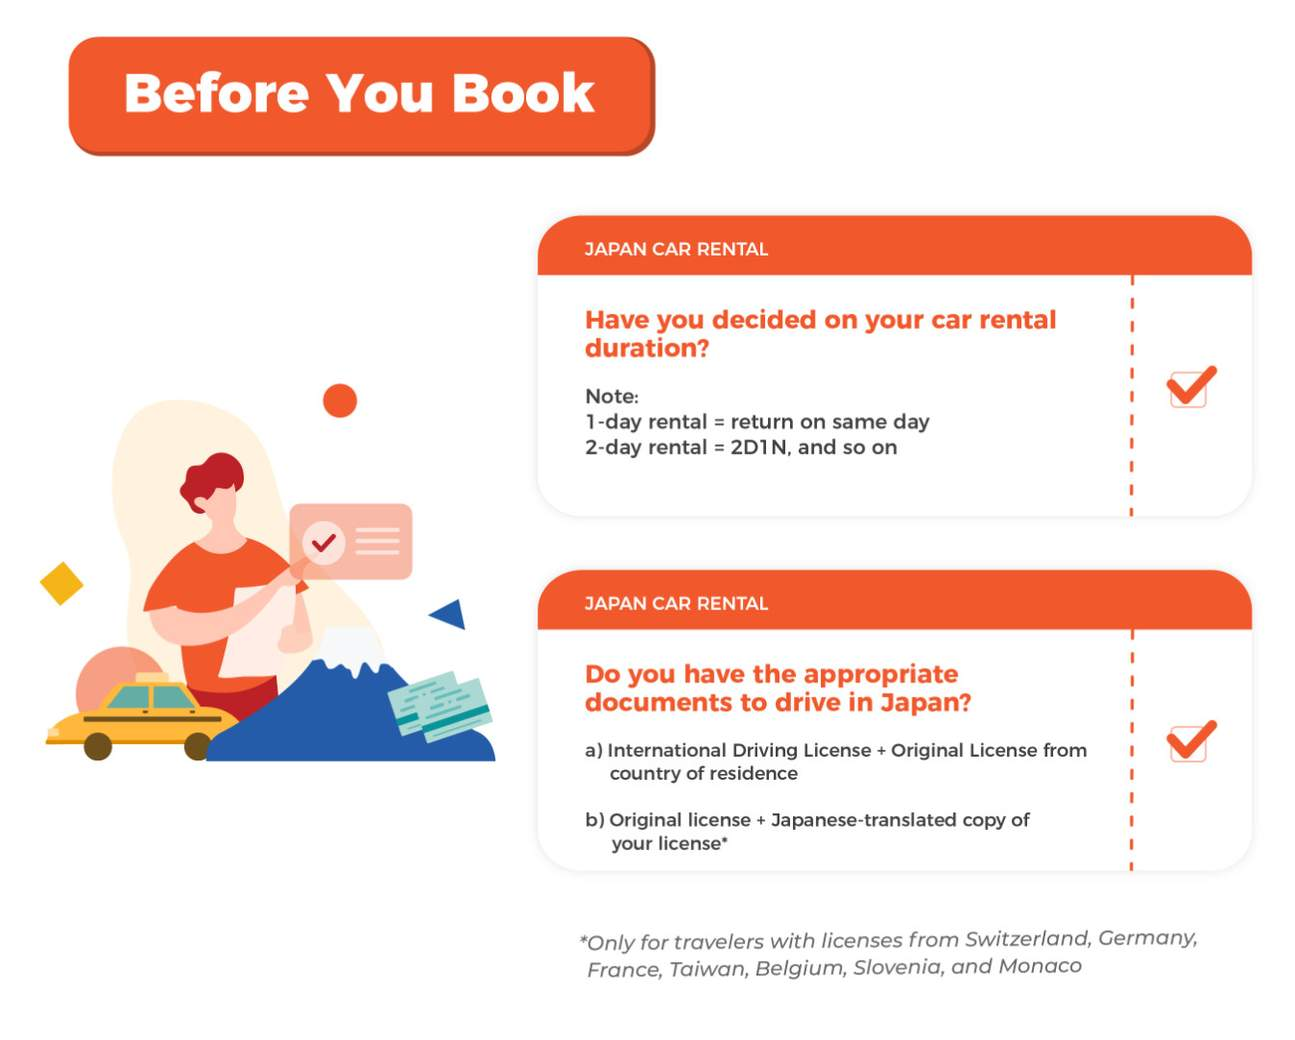 Before You Book